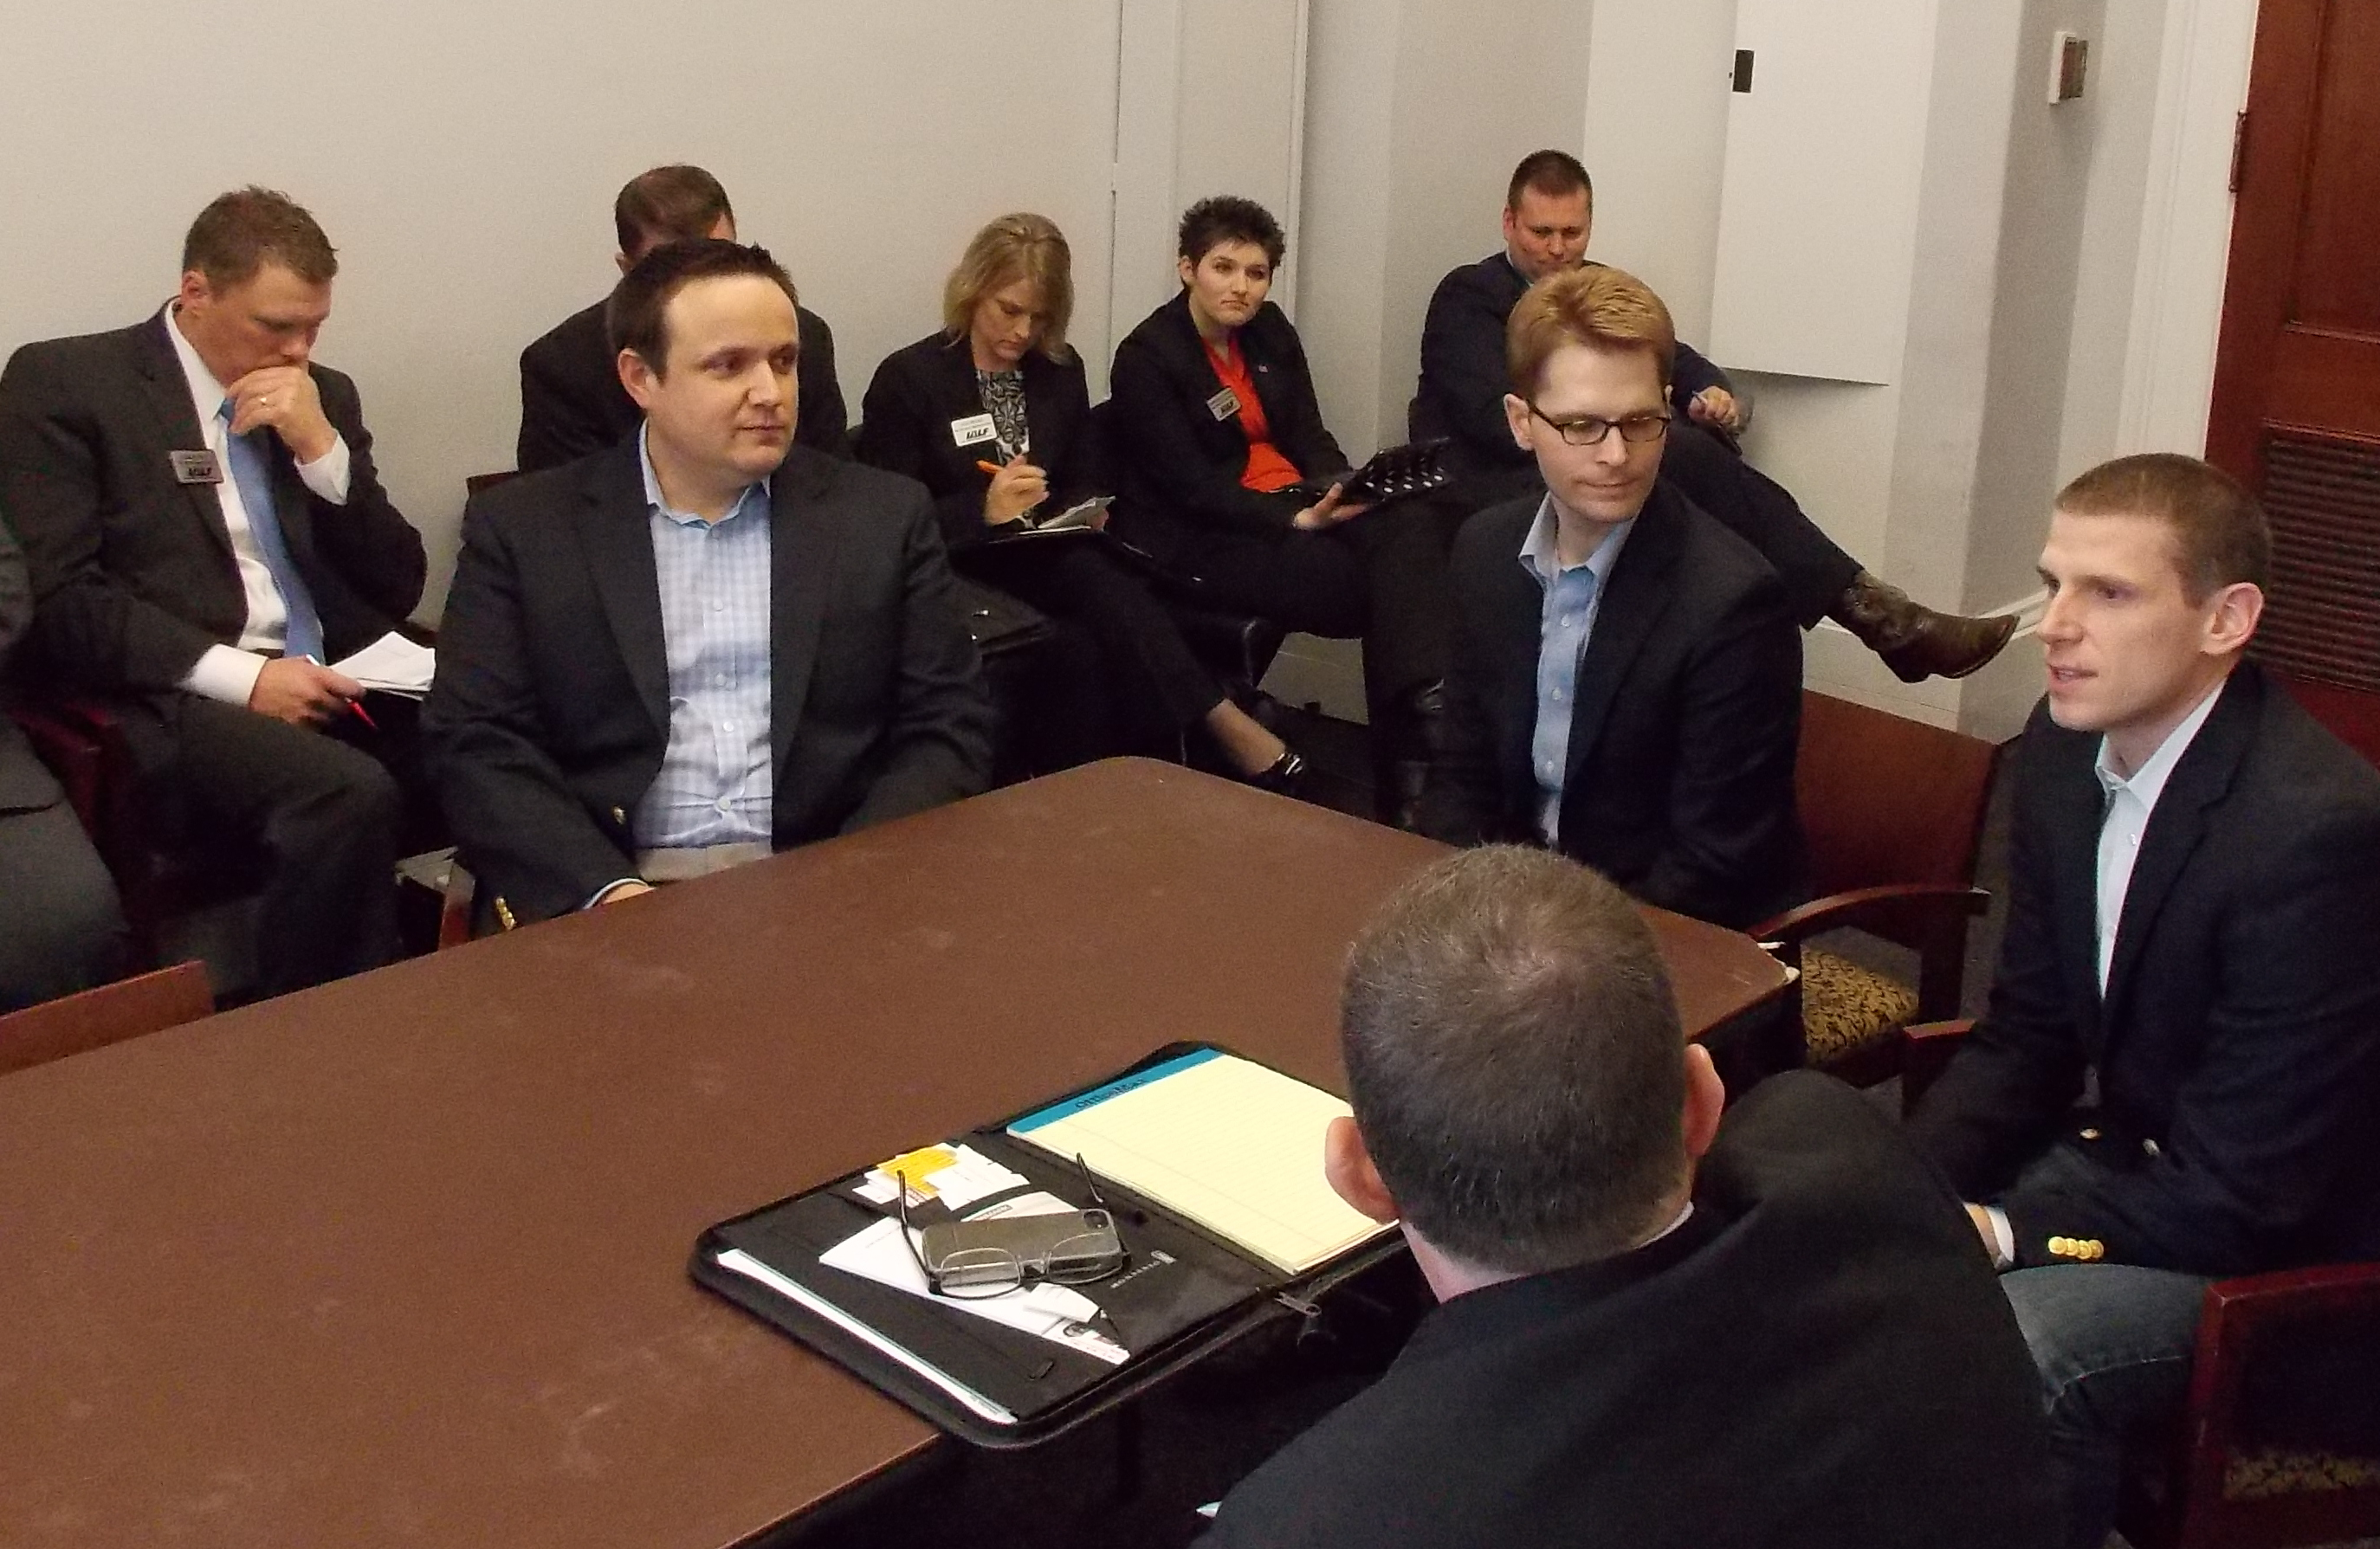 Bart Fisher (left), Matt Shertz, and Bobby Frederick discuss House Agriculture Committee business with the class.